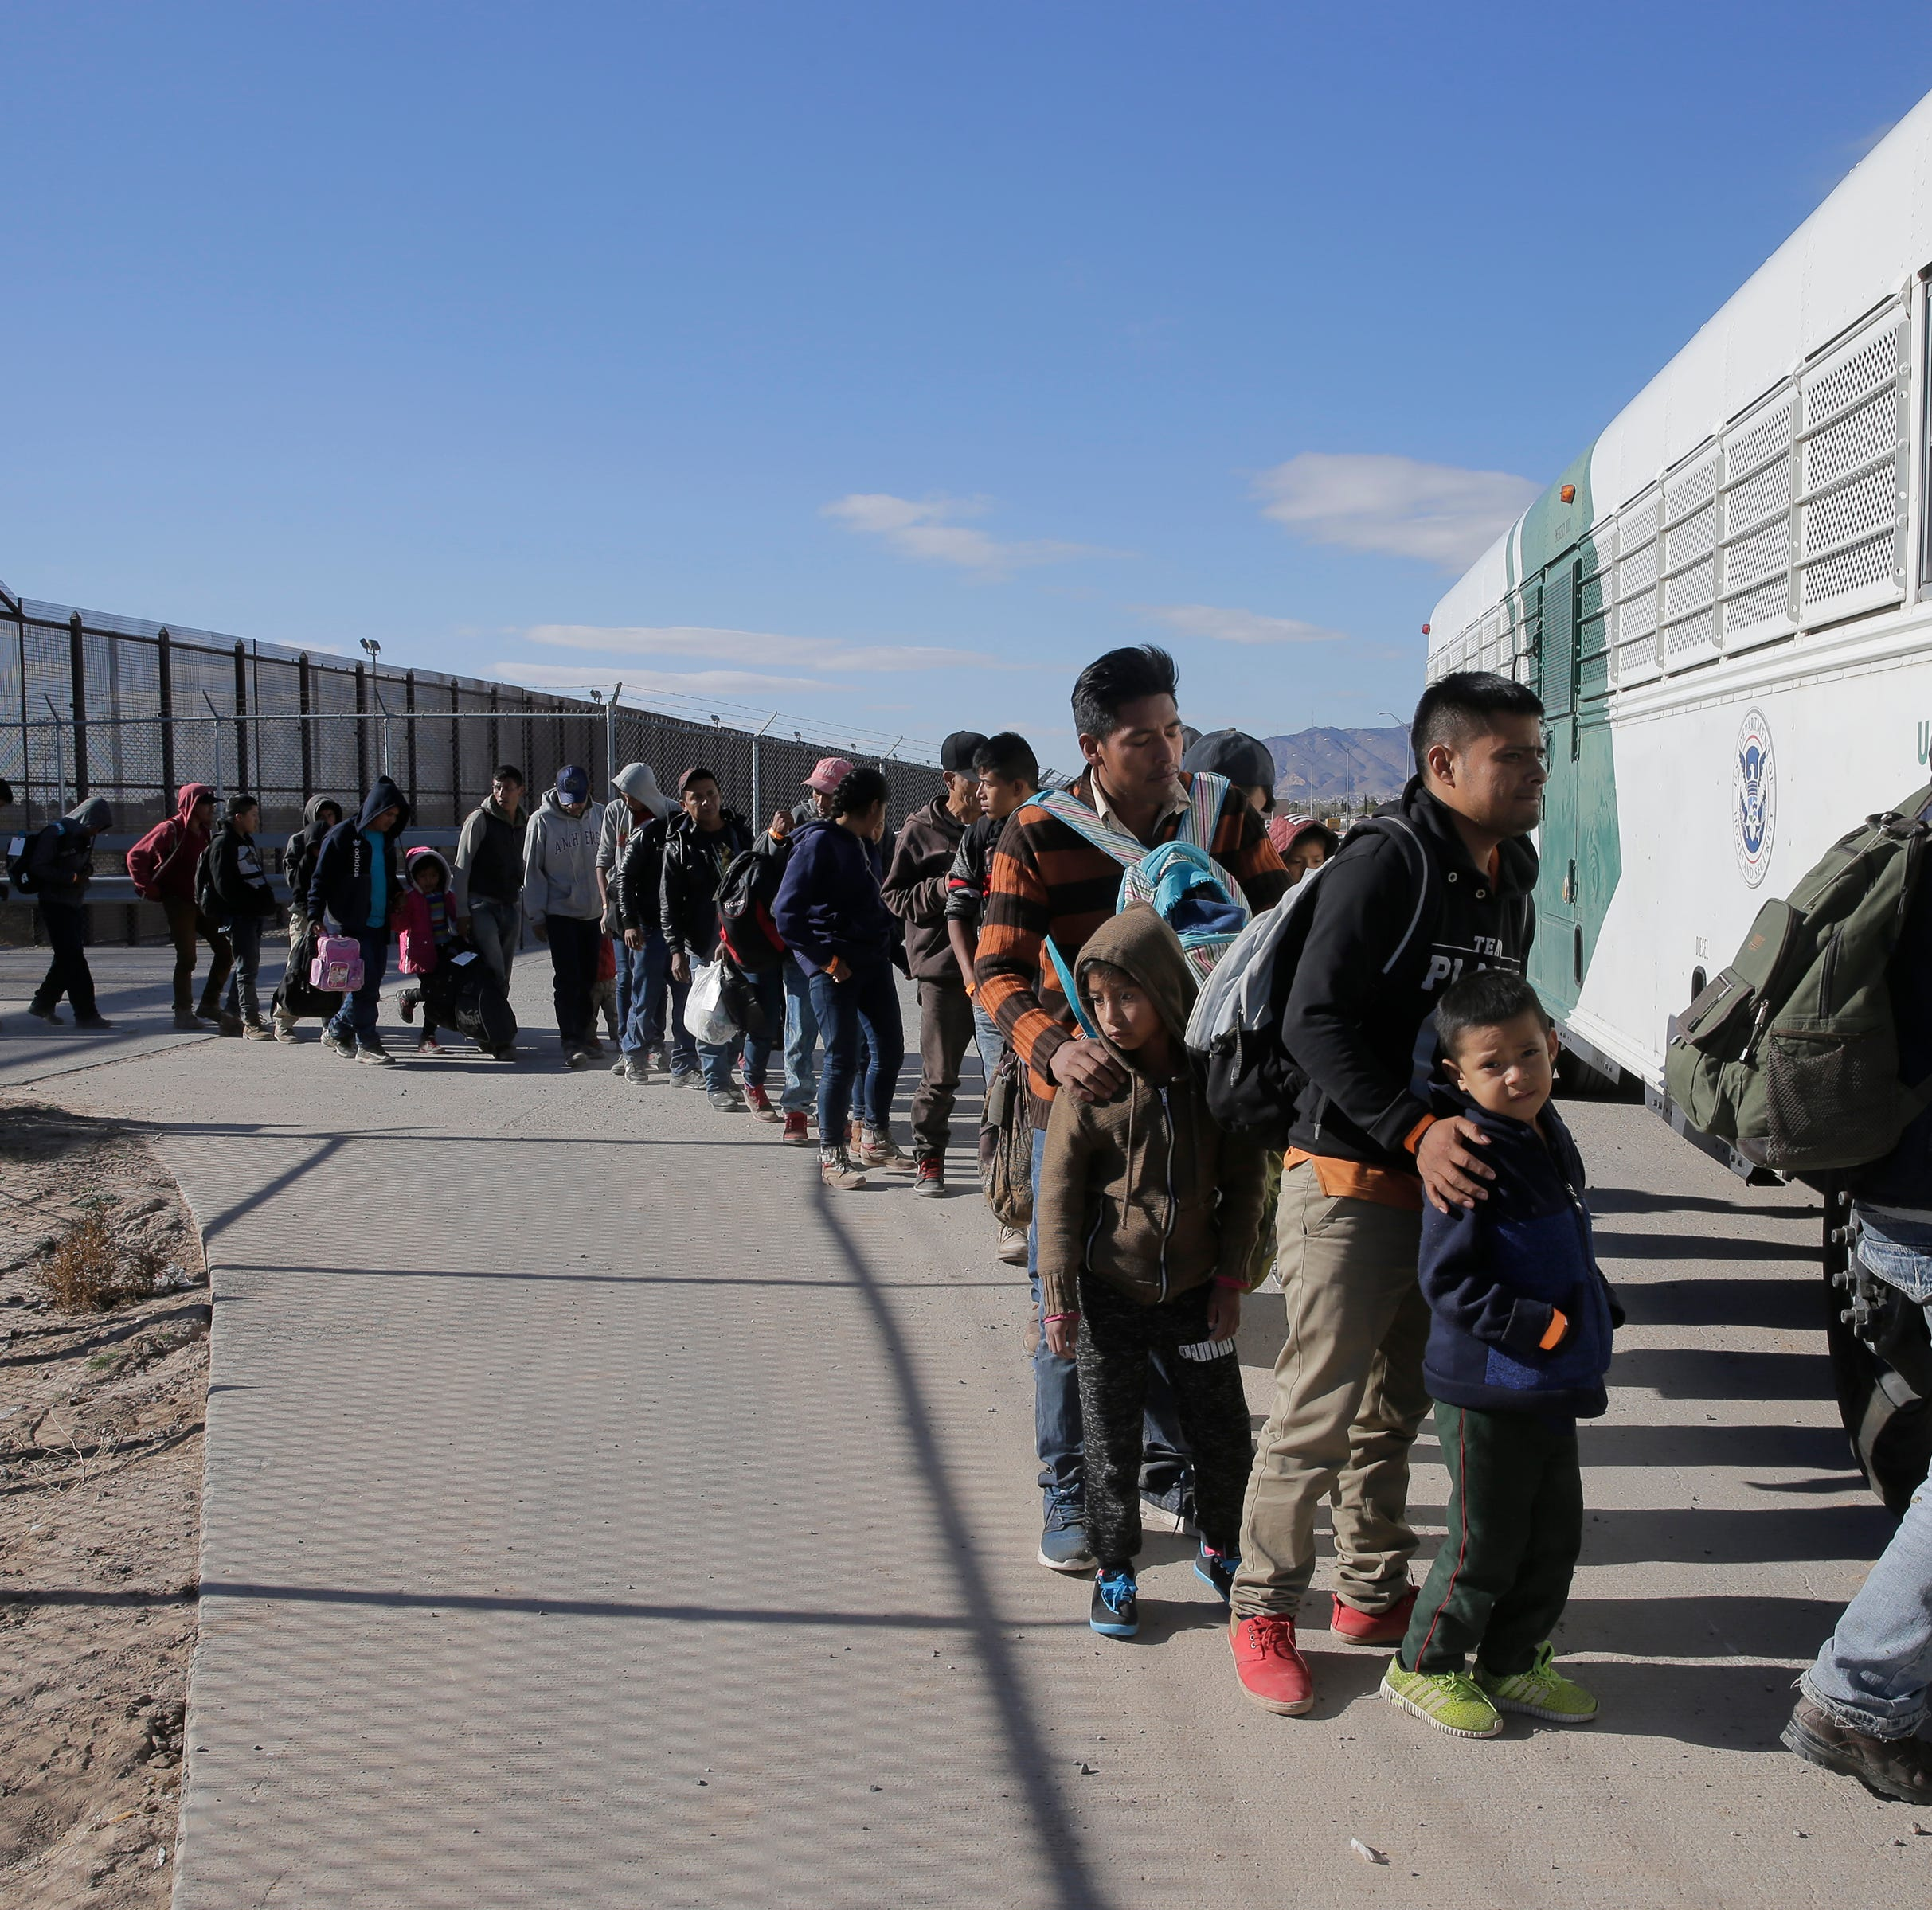 National leaders: Border at breaking point, El Paso highlighted as site of humanitarian crisis